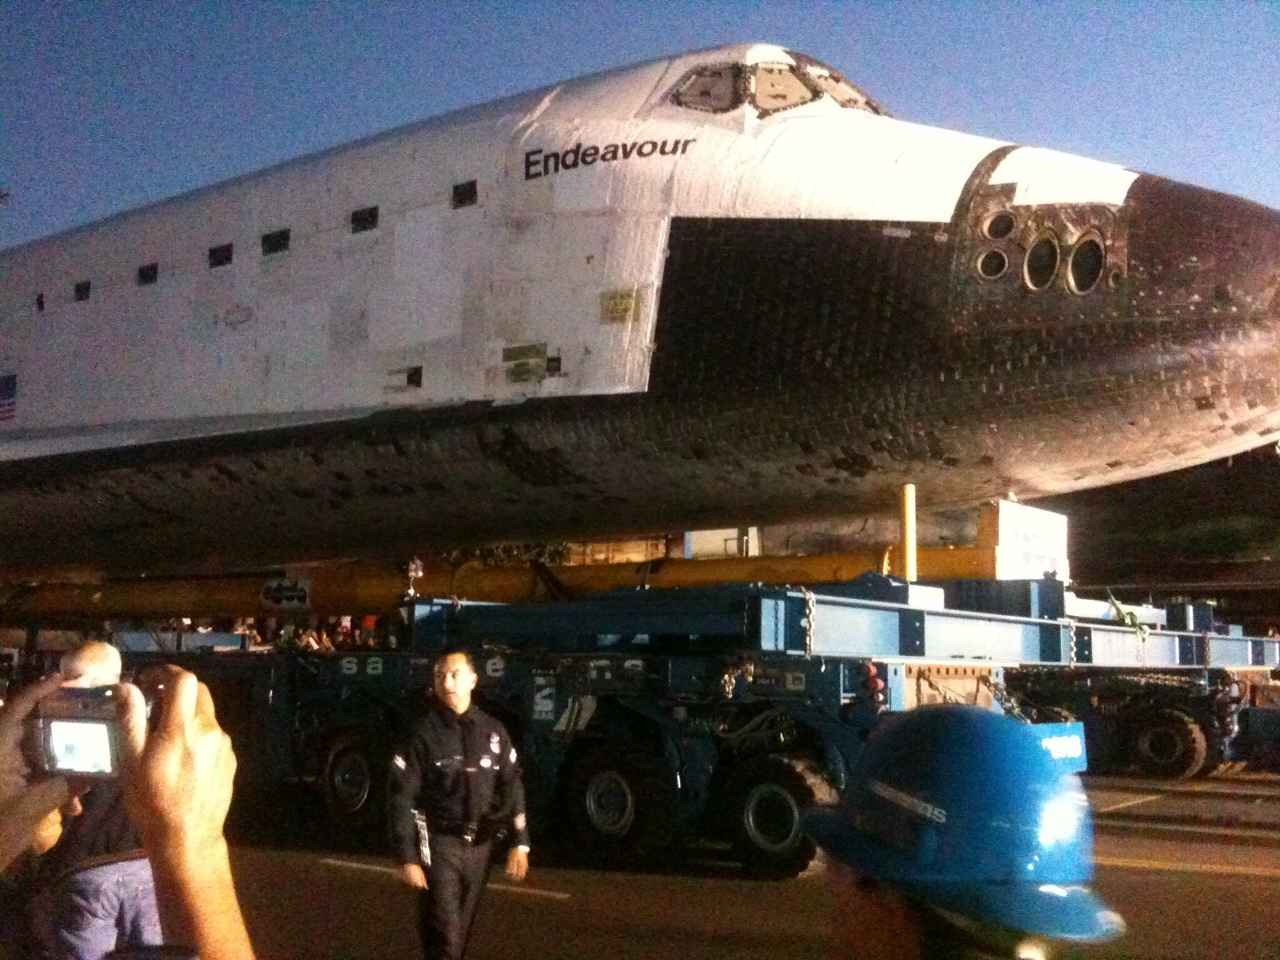 Space Shuttle Endeavour at the LA Science Museum near USC